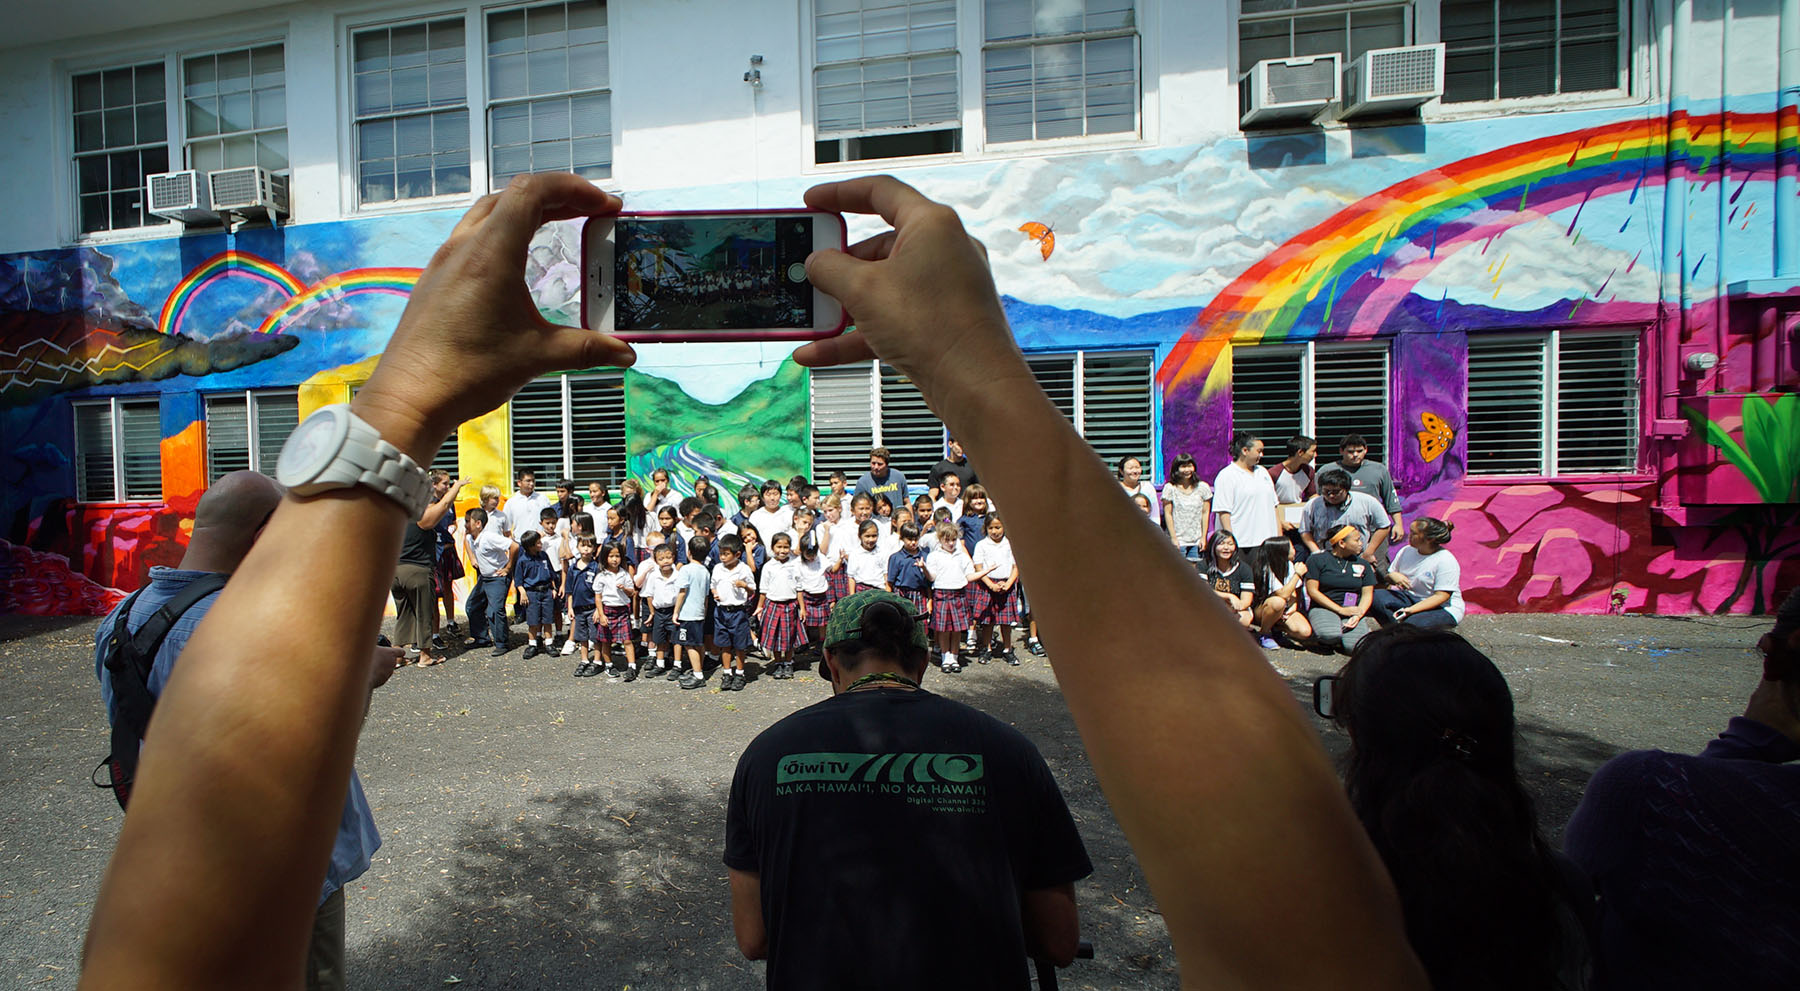 <p>A ceremony unfolds Monday at Cathedral Catholic Academy on Nuuanu Avenue. Its students partnered with others from the Pacific Buddhist Academy and the Mele Murals program to design and paint a mural.</p>